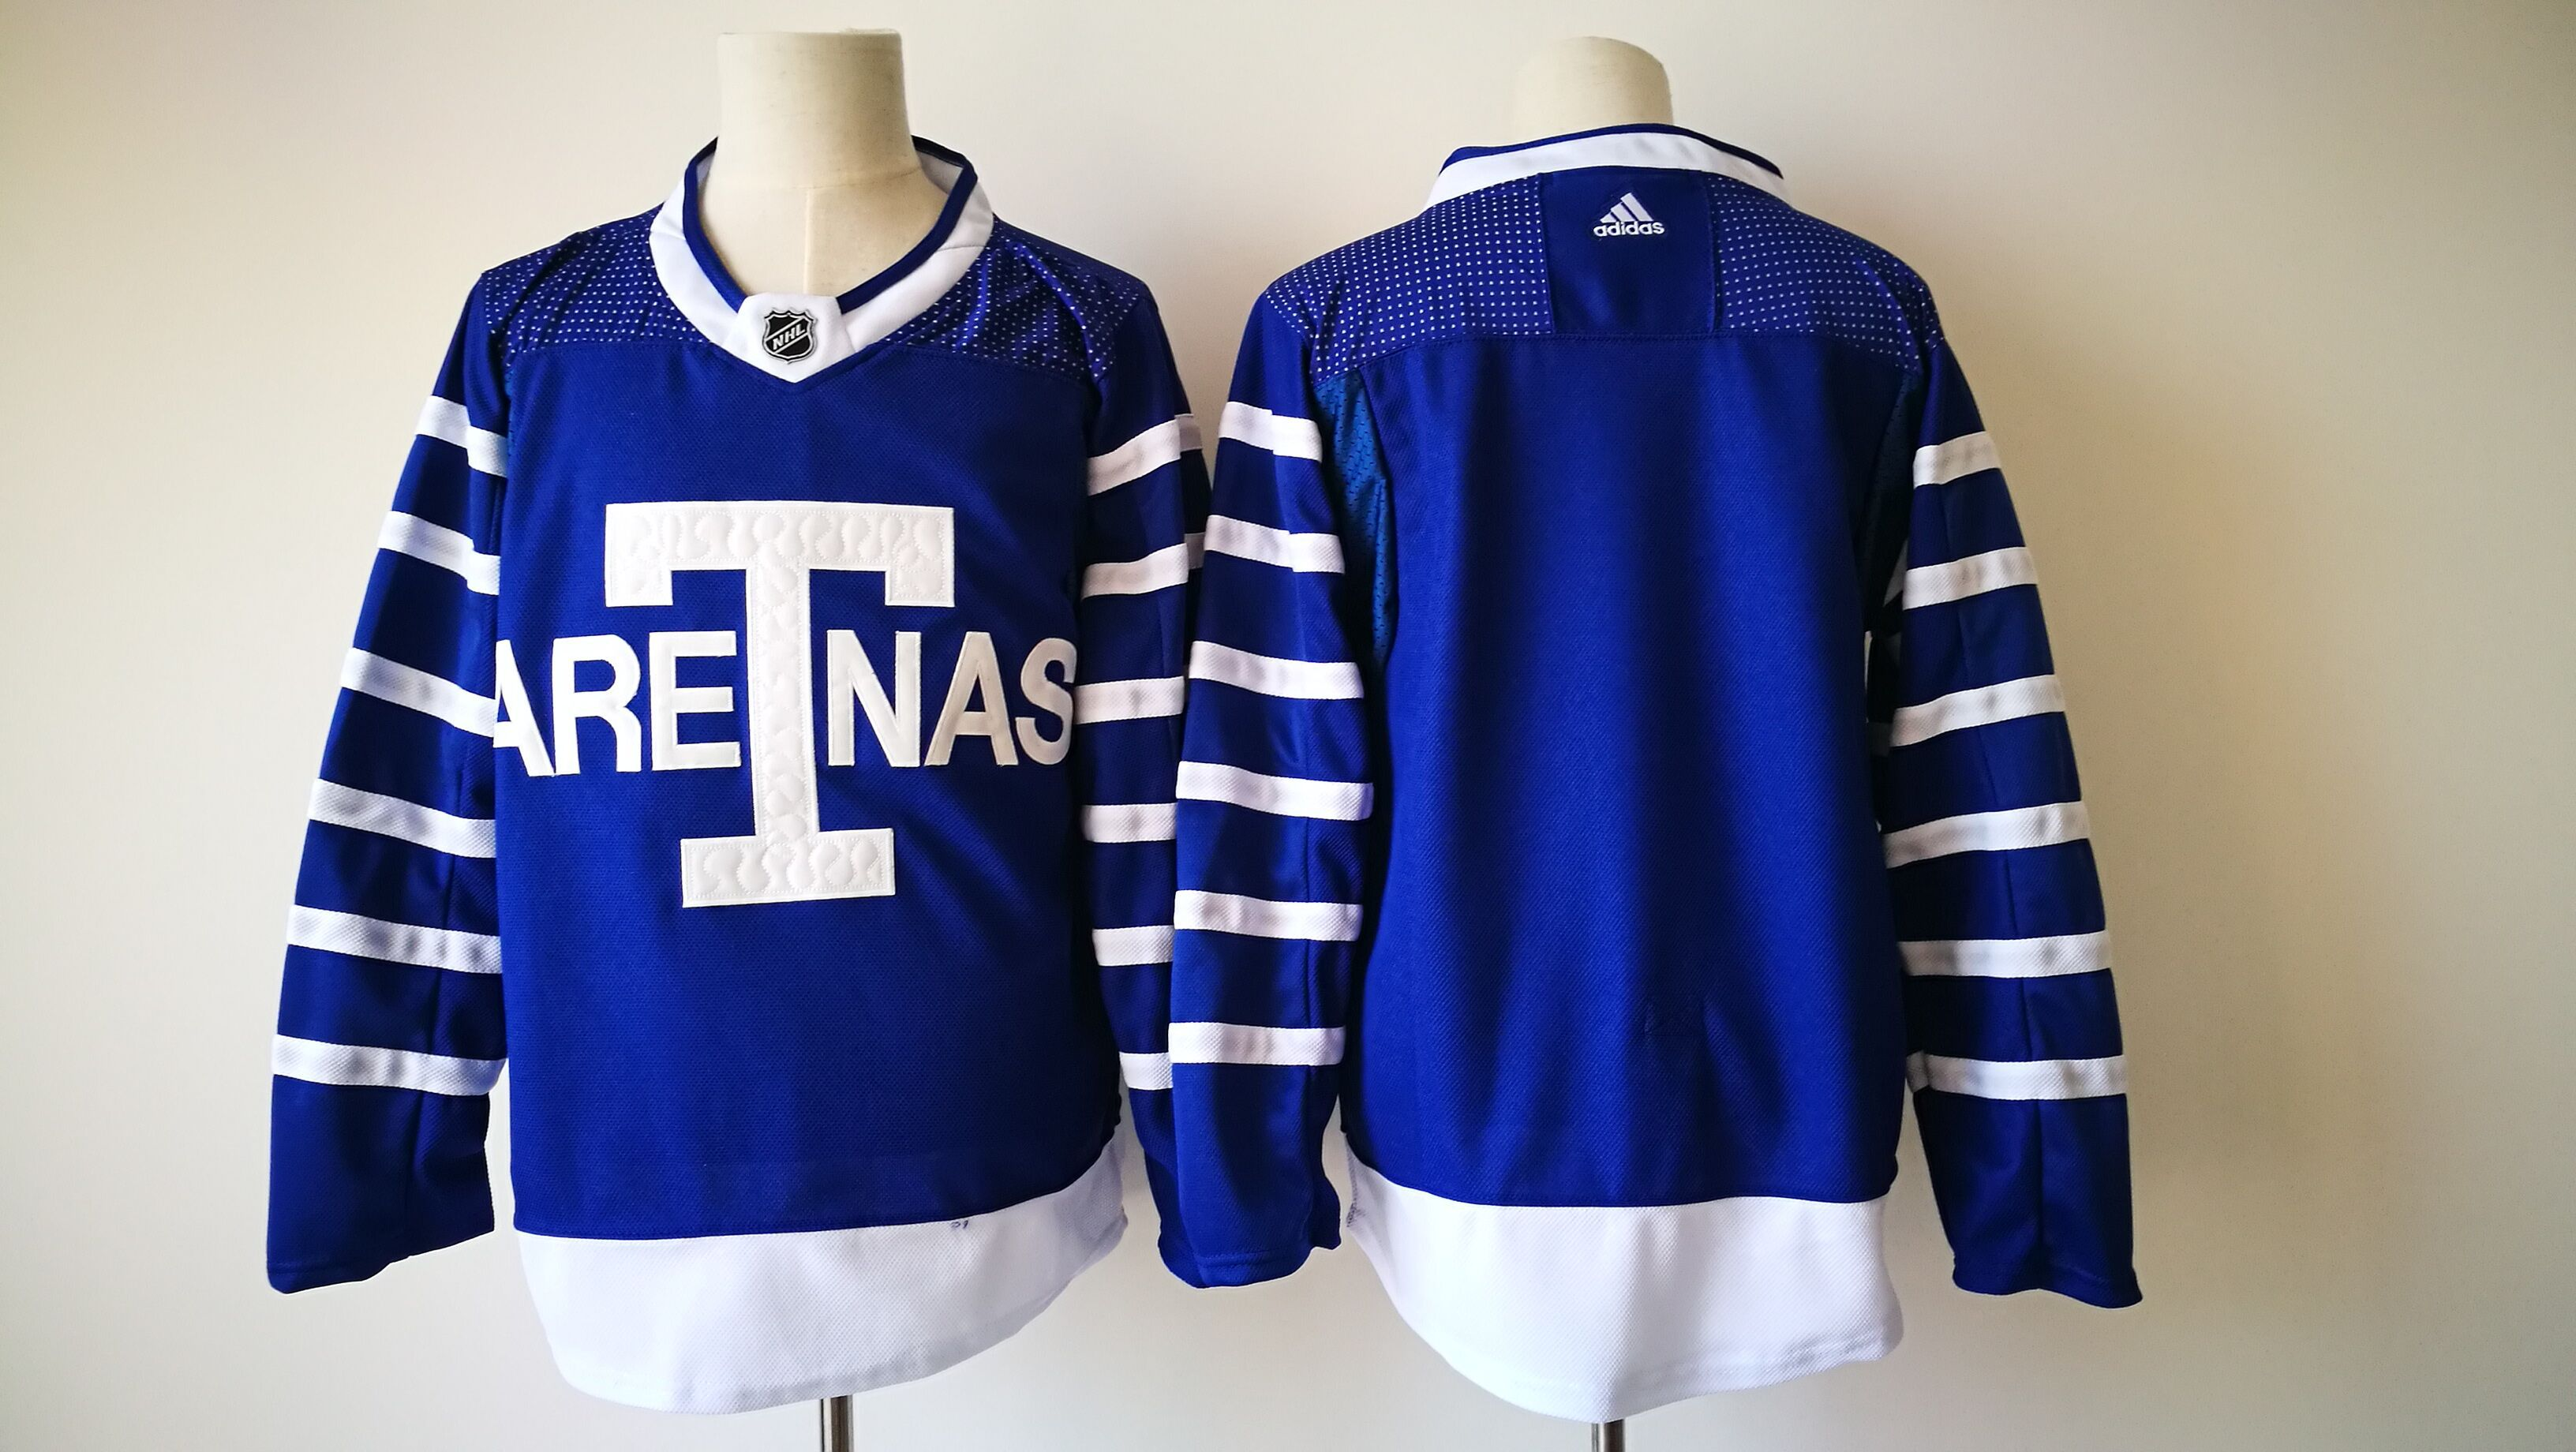 2017 Men NHL Toronto Maple Leafs Blank Adidas blue jersey